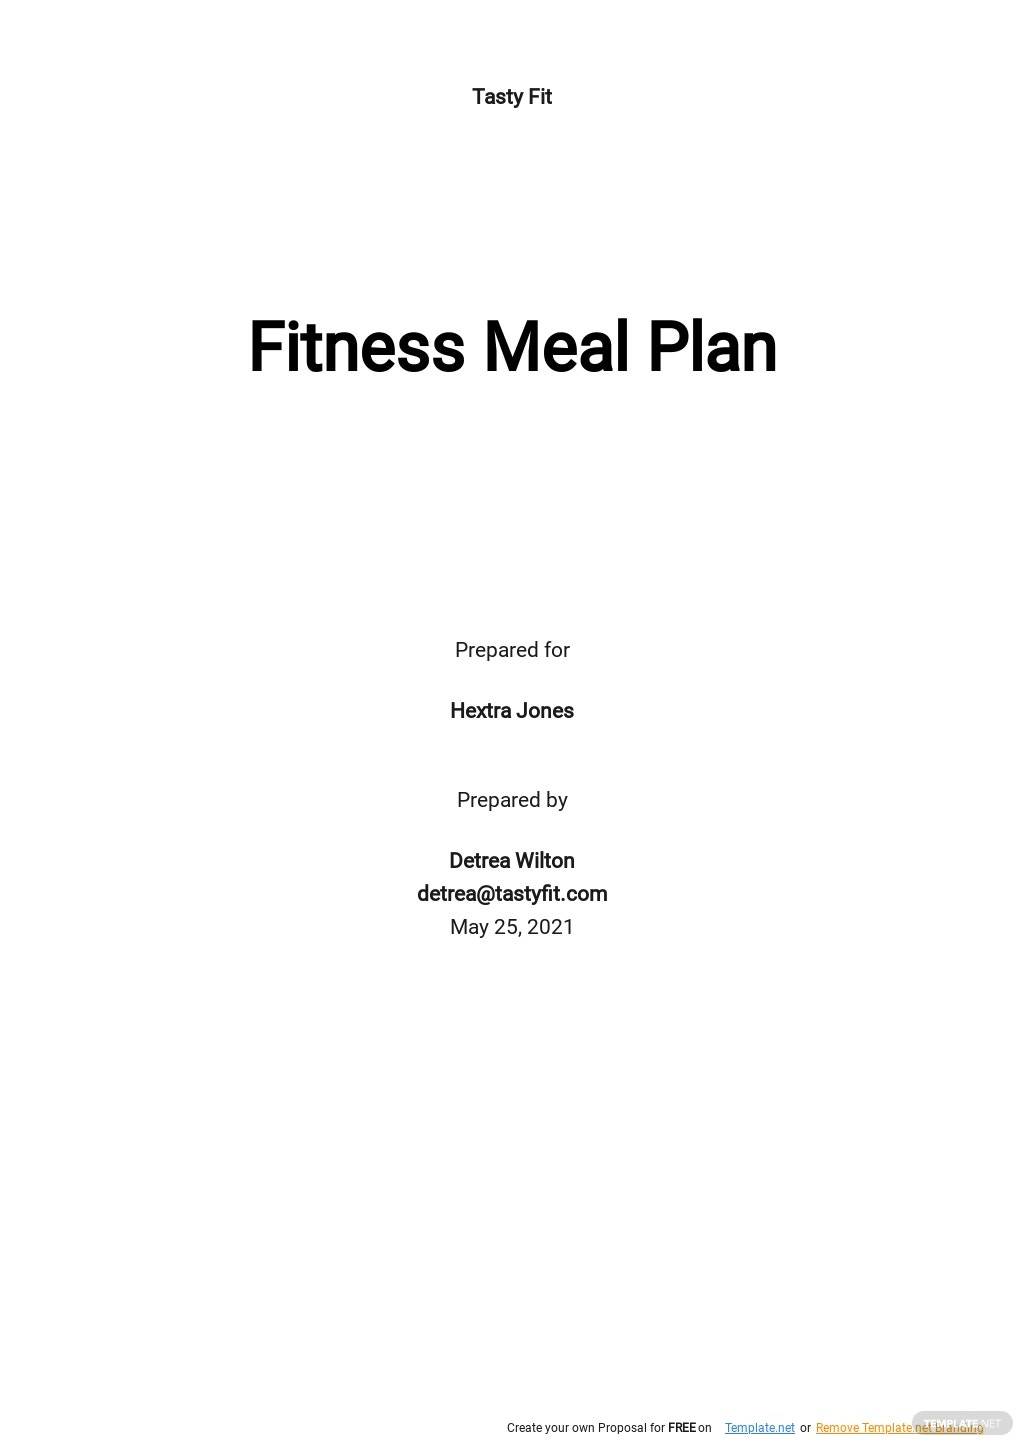 Fitness Meal Plan Template.jpe